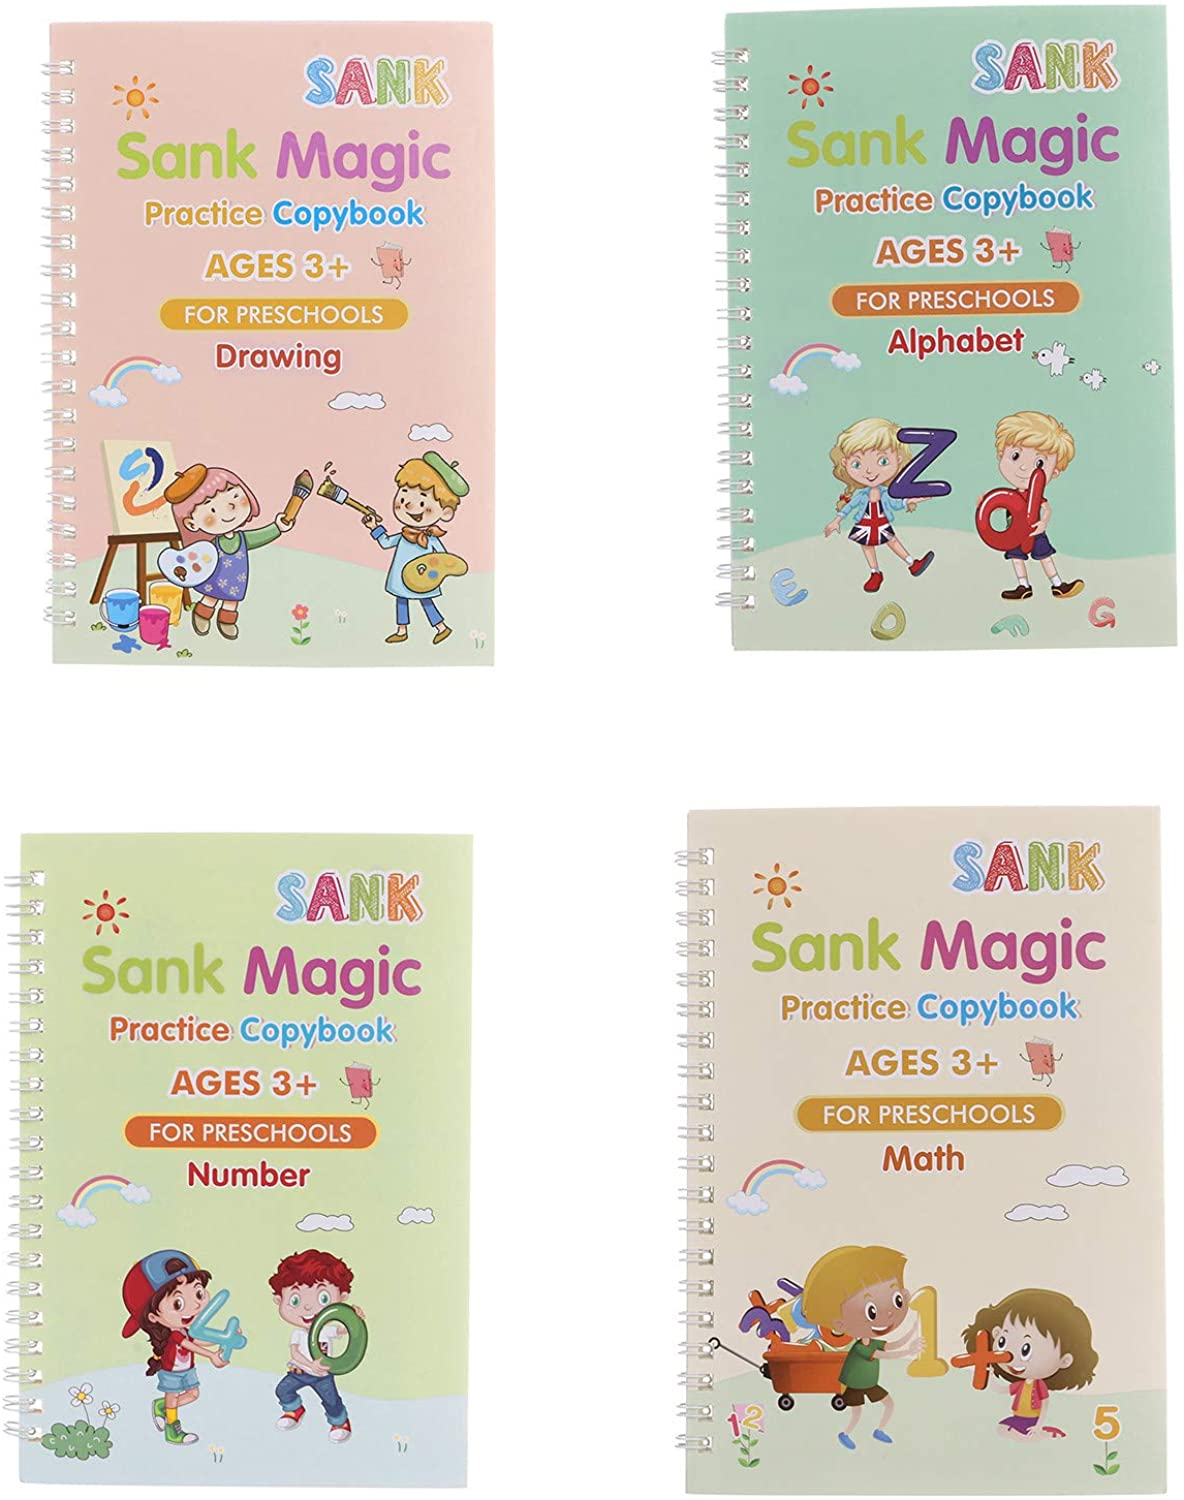 English Magic Practice Copybook, Calligraphy That Can Be Reused Handwriting Copybook Tracing Book Set for Kids